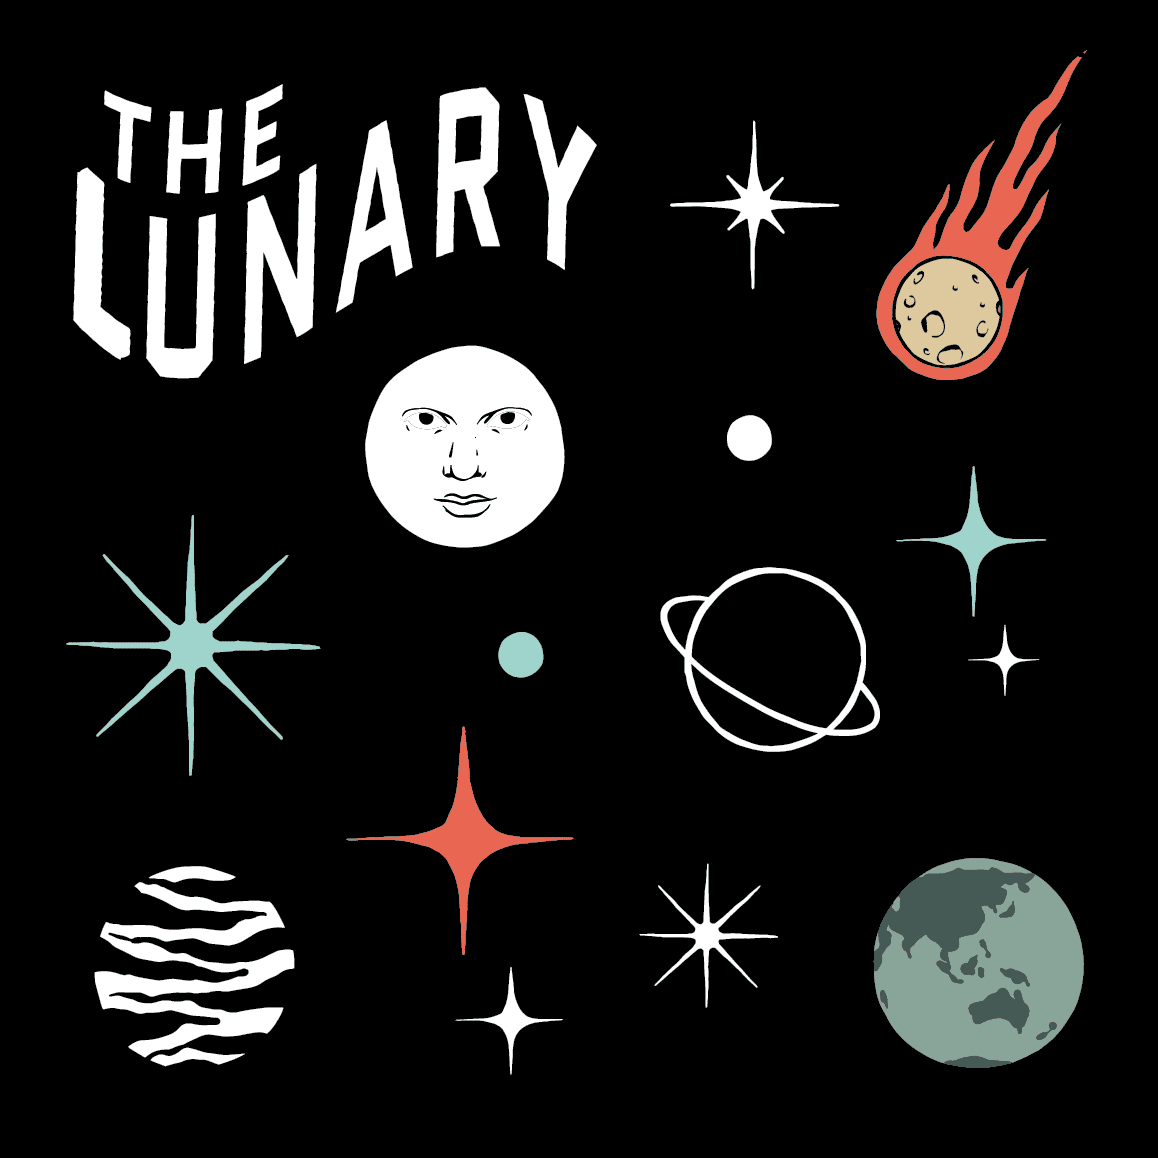 The Lunary packaging